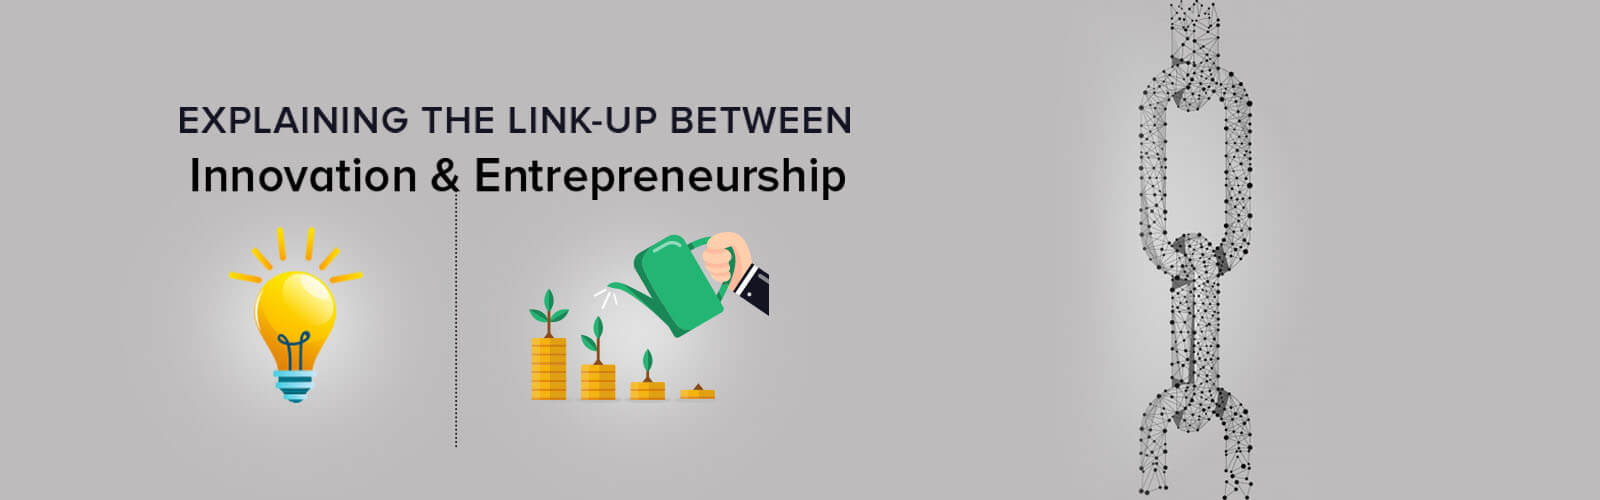 Explaining the Link-Up Between Innovation & Entrepreneurship